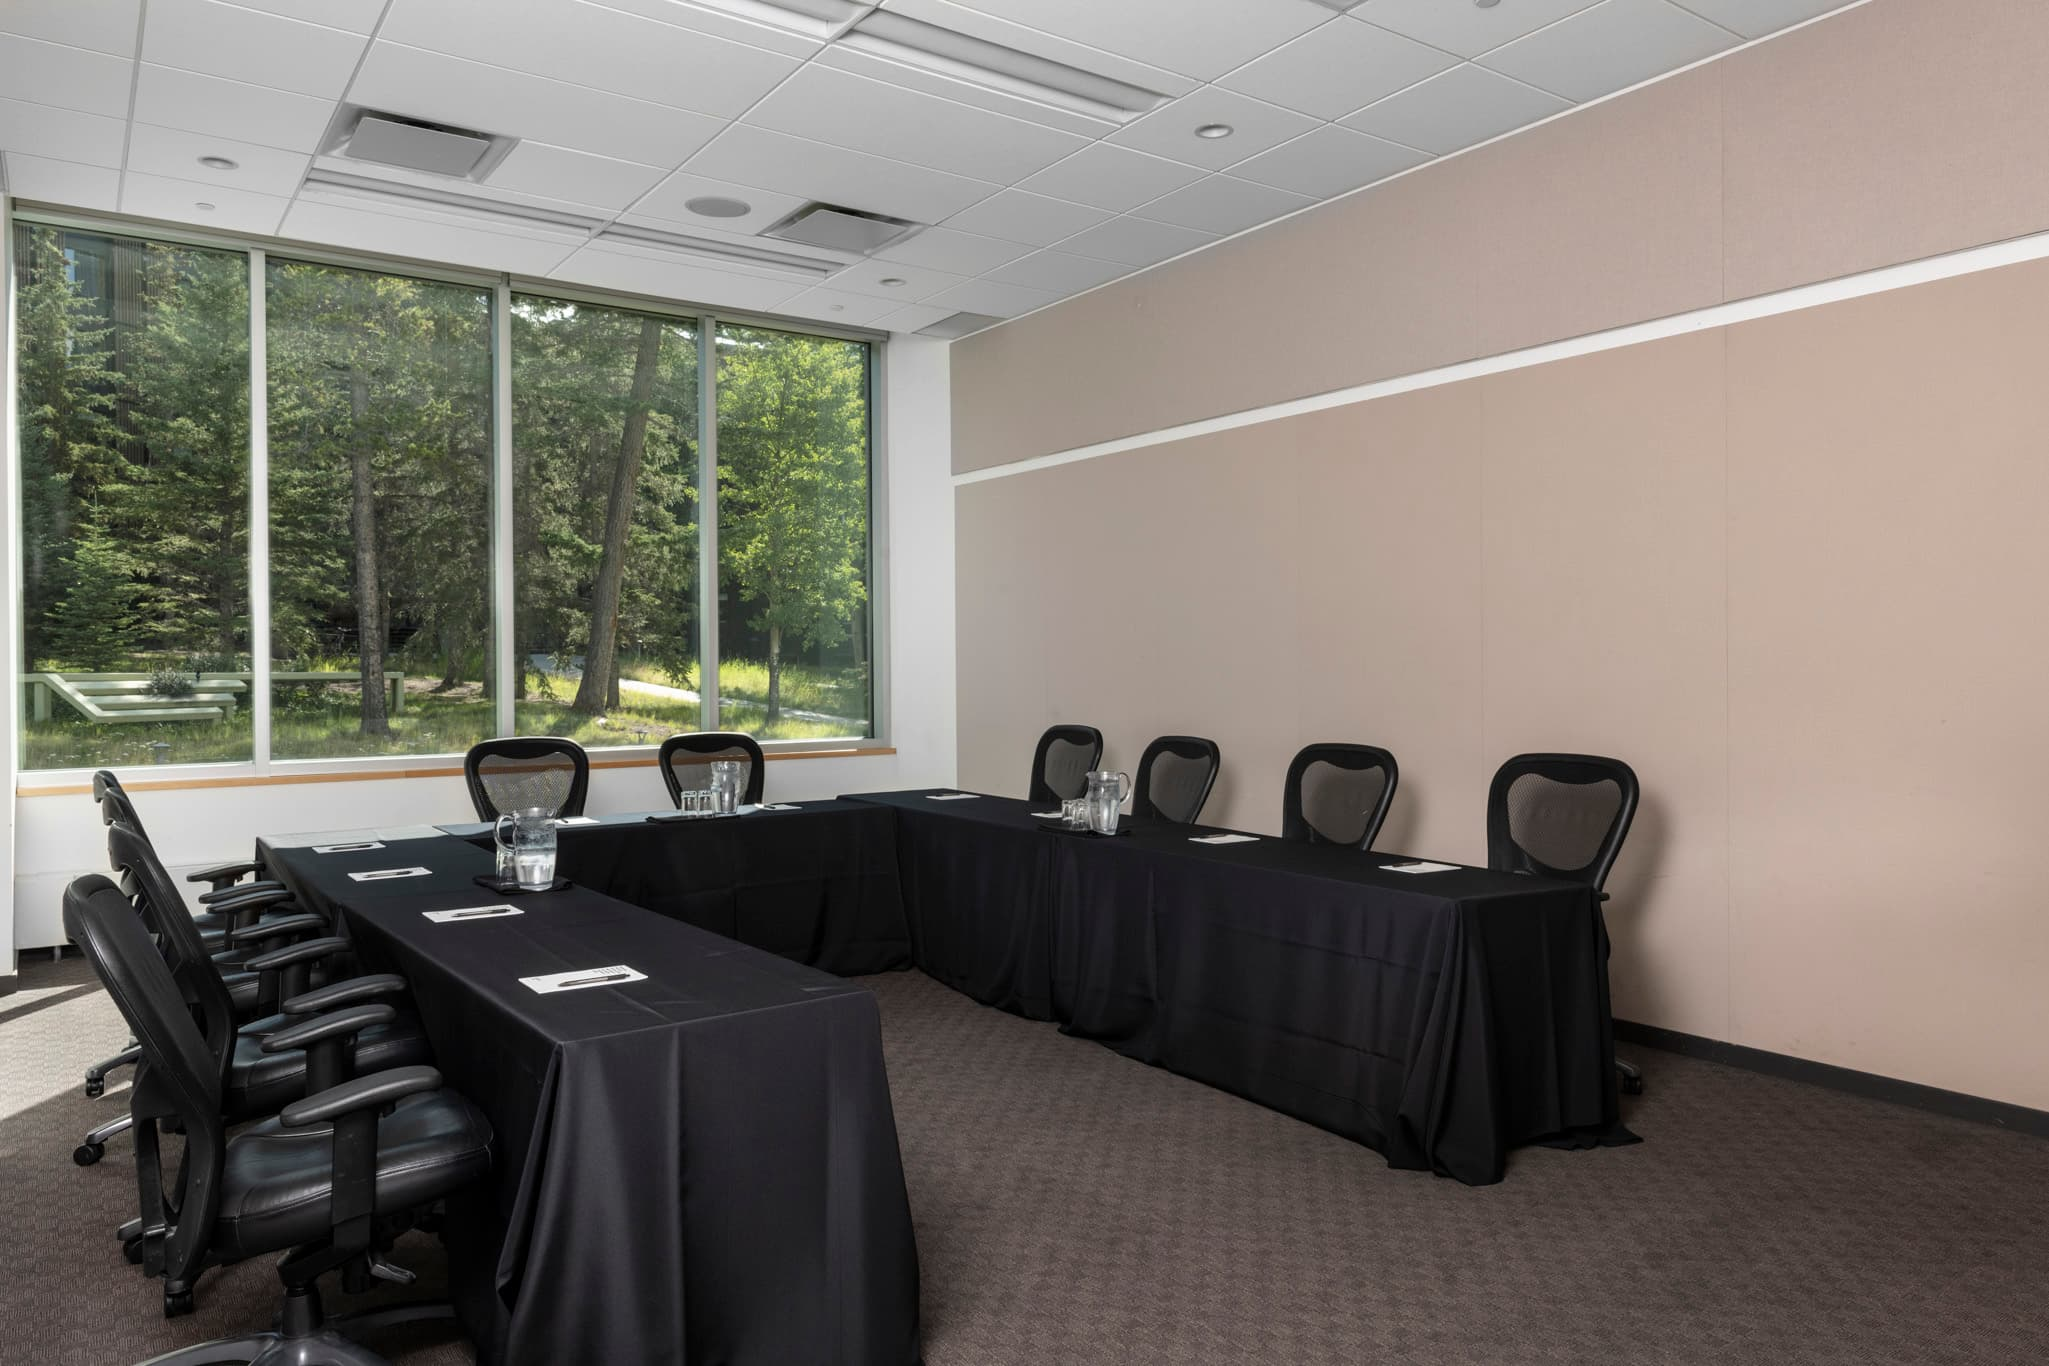 An open ended round table meeting room with a large window.